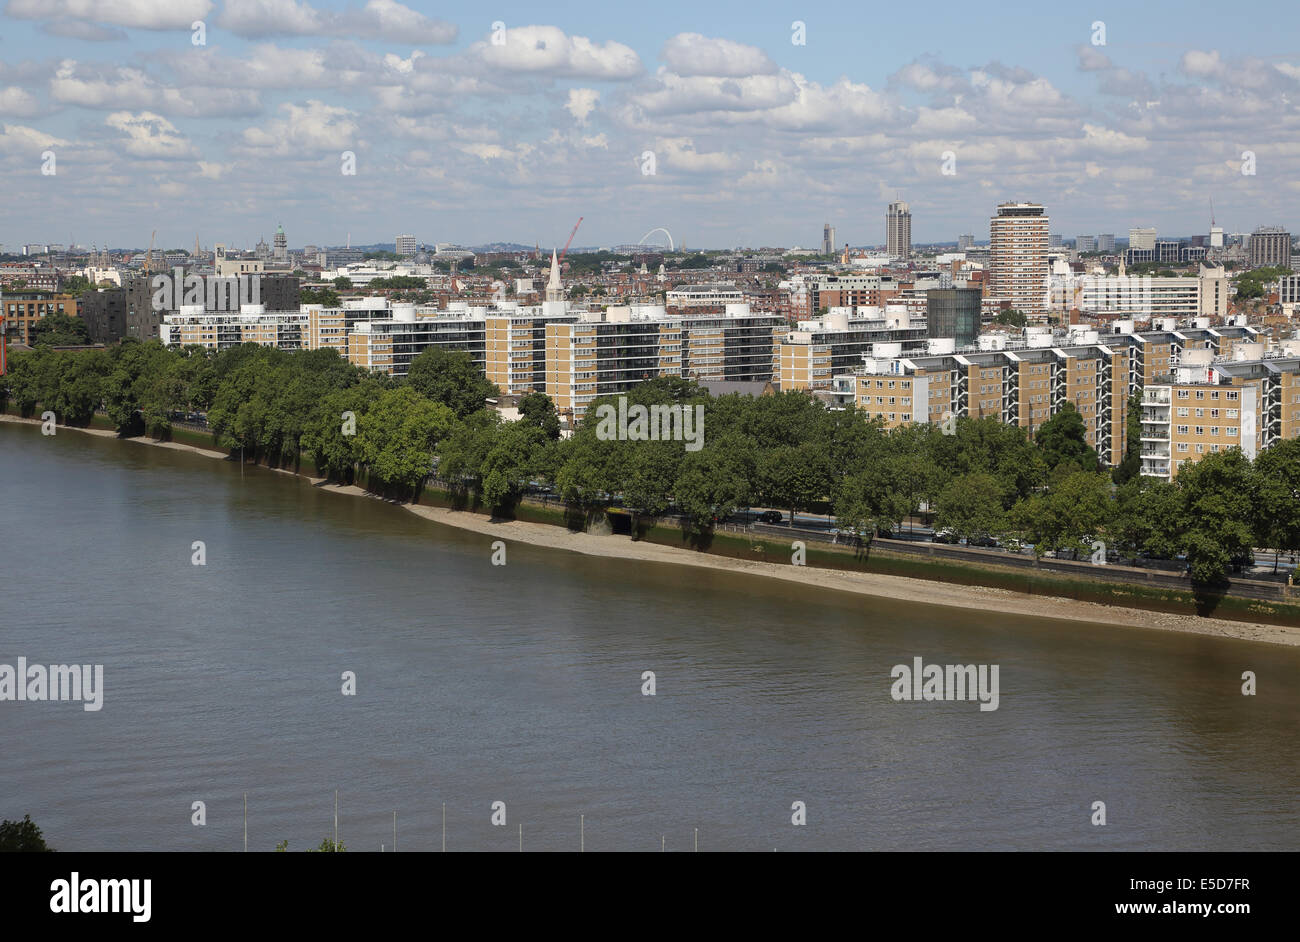 Churchill Gardens housing estate in the Pimlico district of Westminster, London, viewed from across the River Thames. Stock Photo